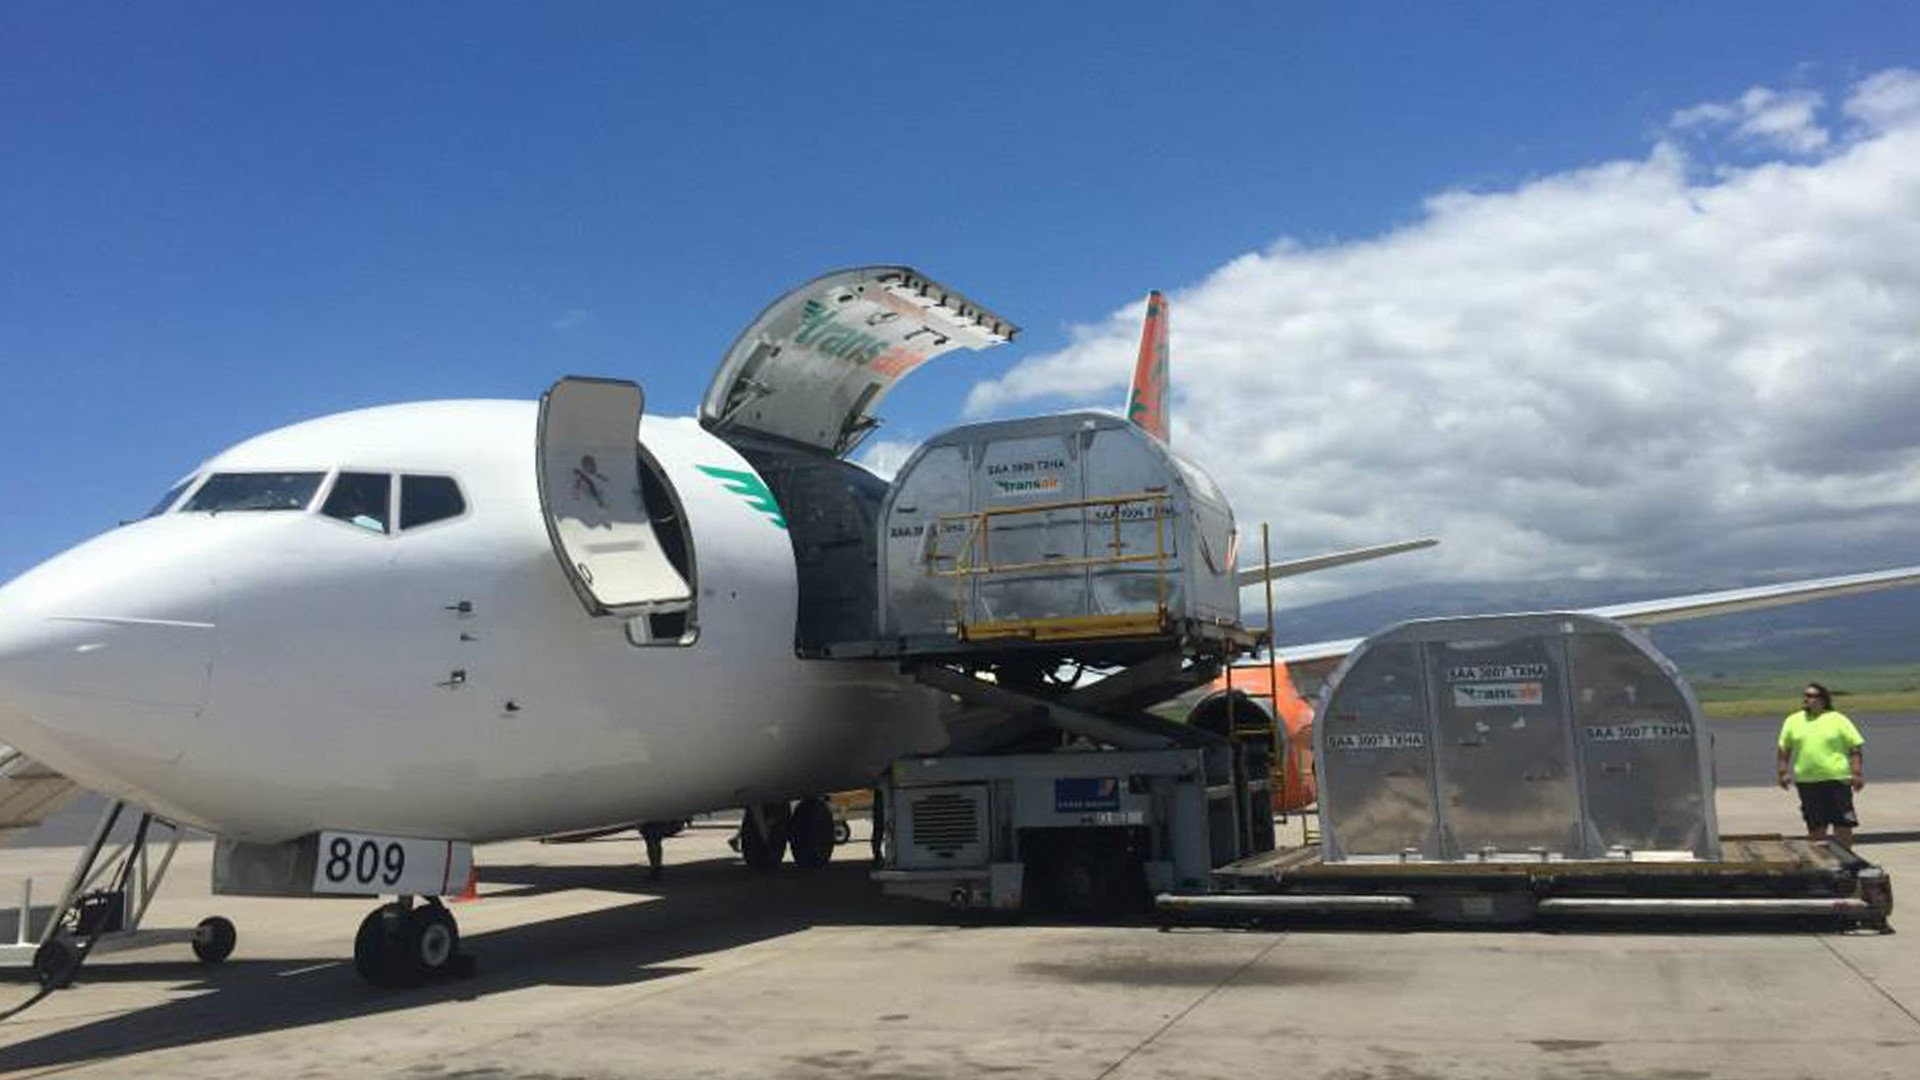 A Boeing 737 cargo plane getting a pallet loaded through front door on a sunny day.